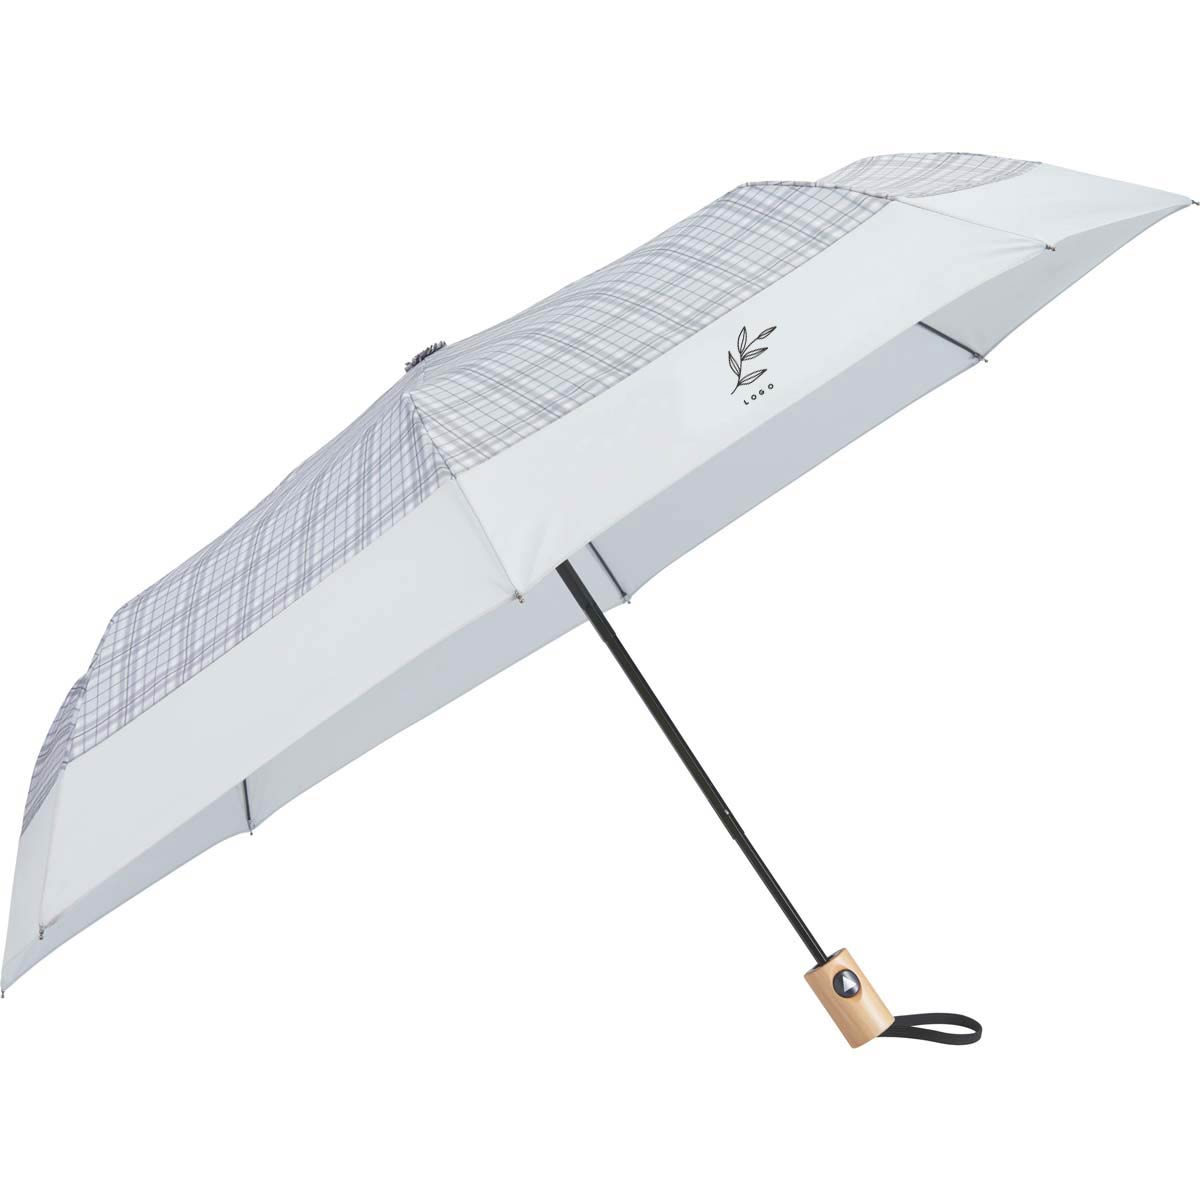 287552 recycled plaid umbrella one color one location imprint